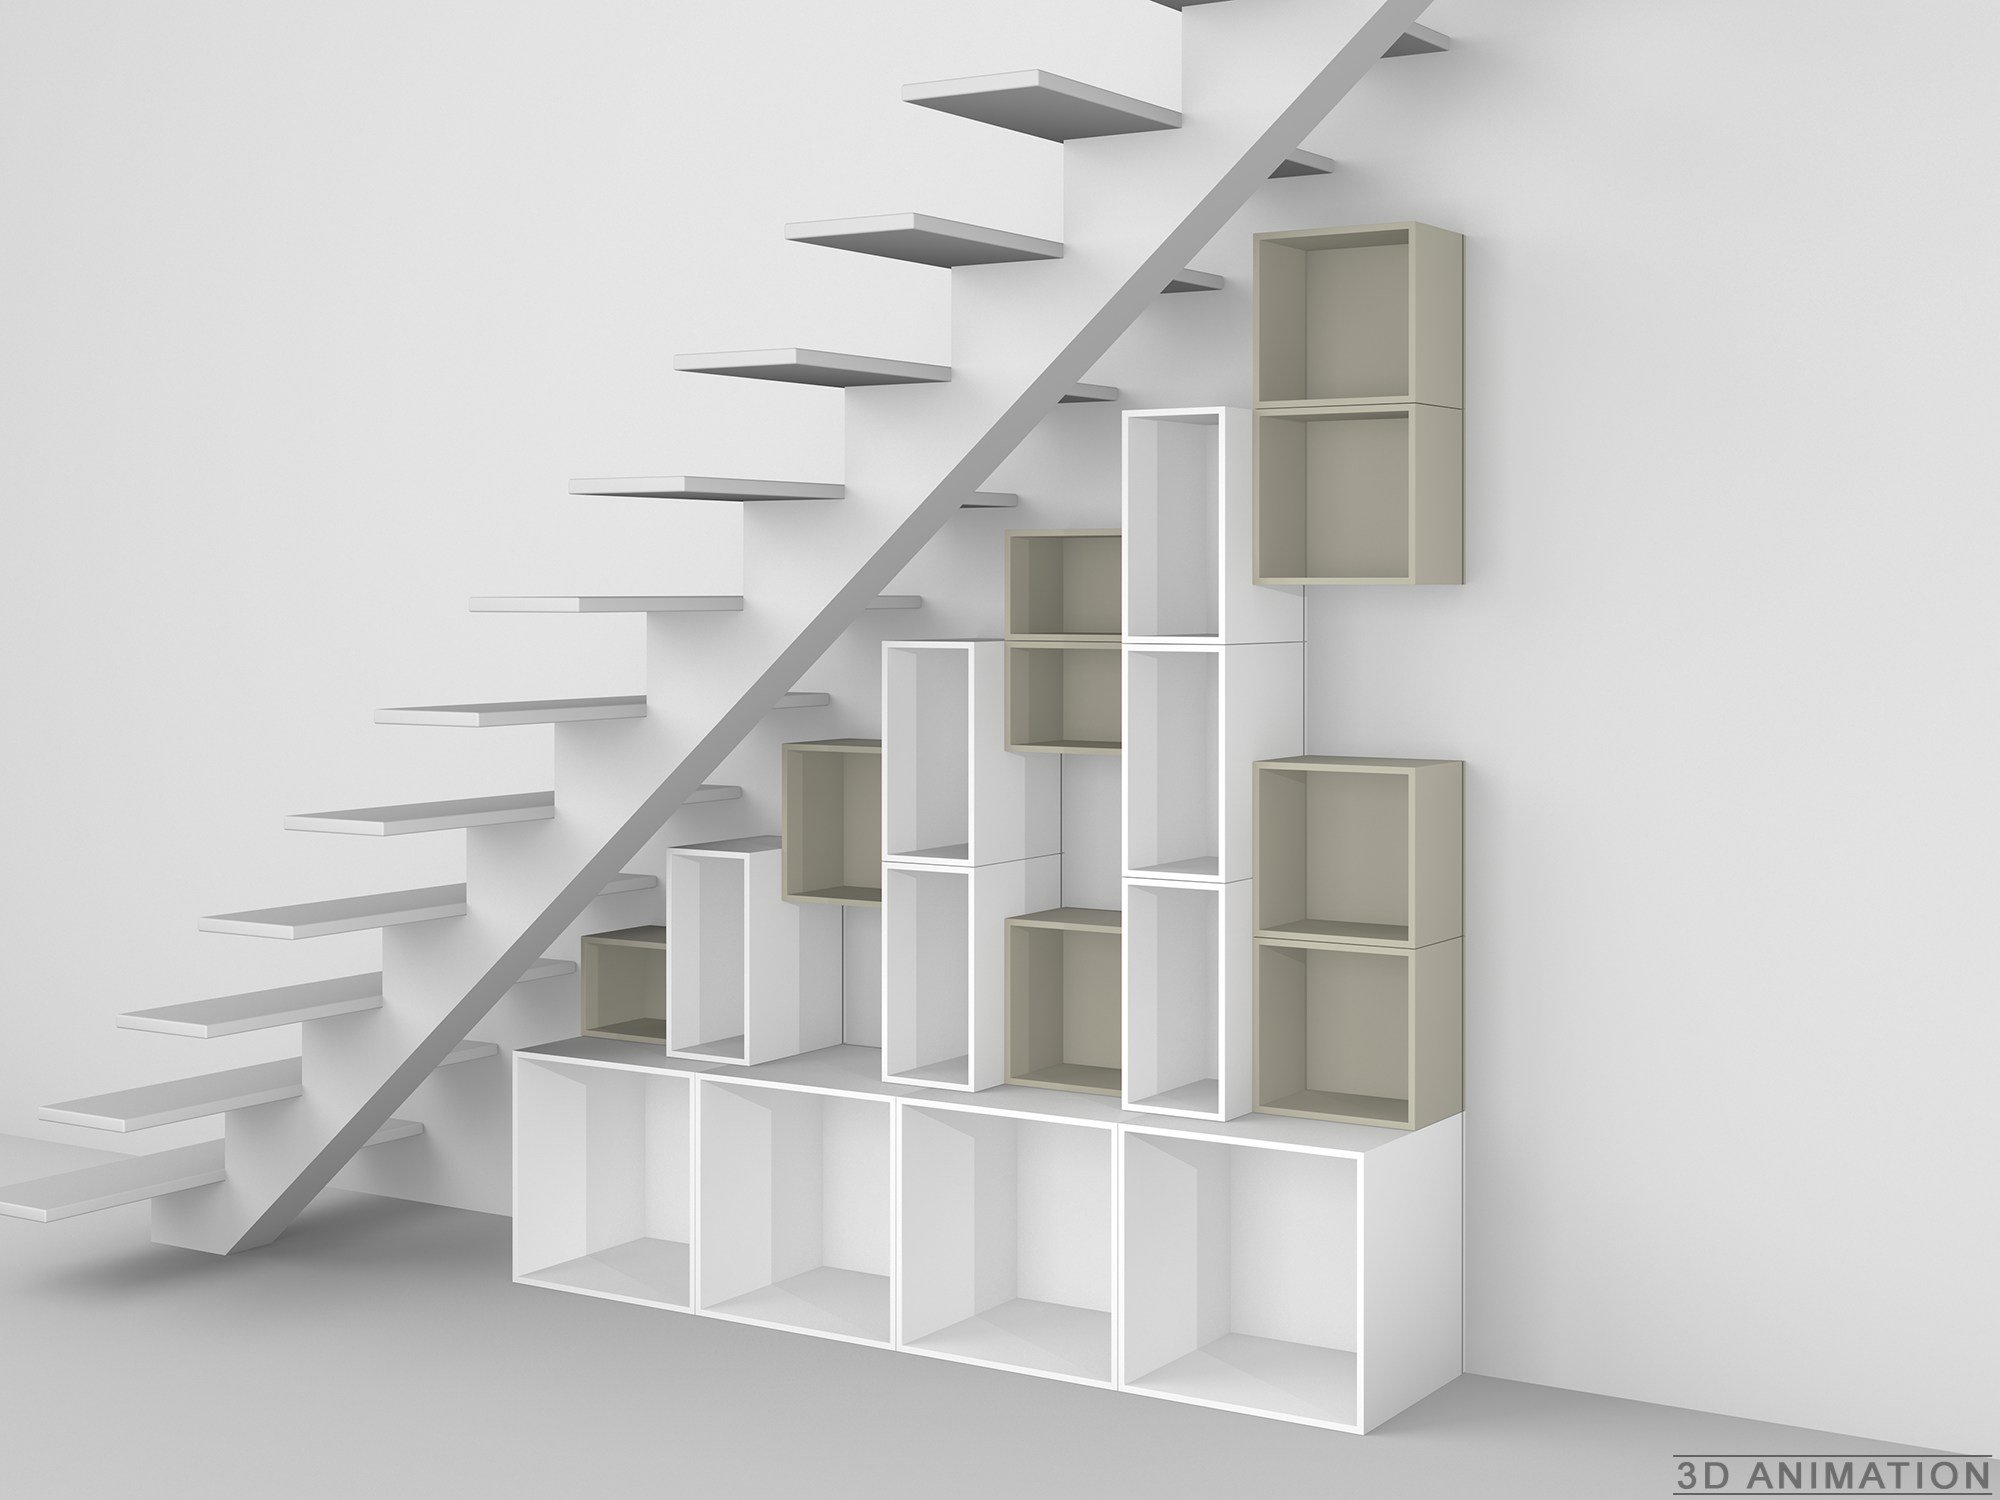 modular shelving unit by cubit by mymito design cubit. Black Bedroom Furniture Sets. Home Design Ideas